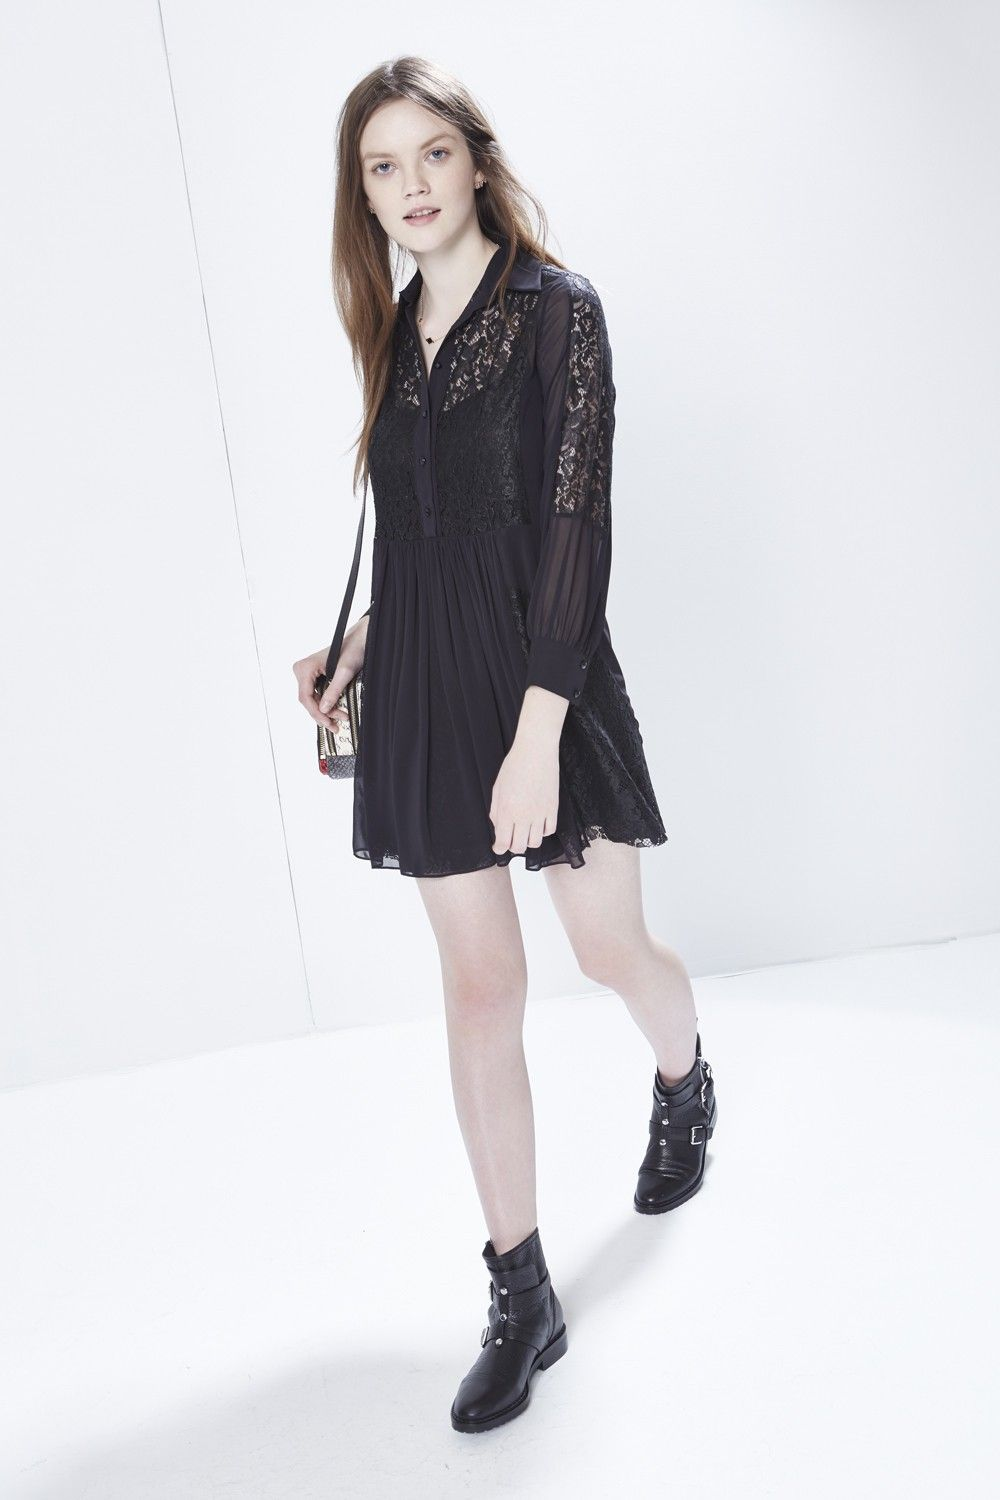 rock dress tonal lace panels add textural dimension to this